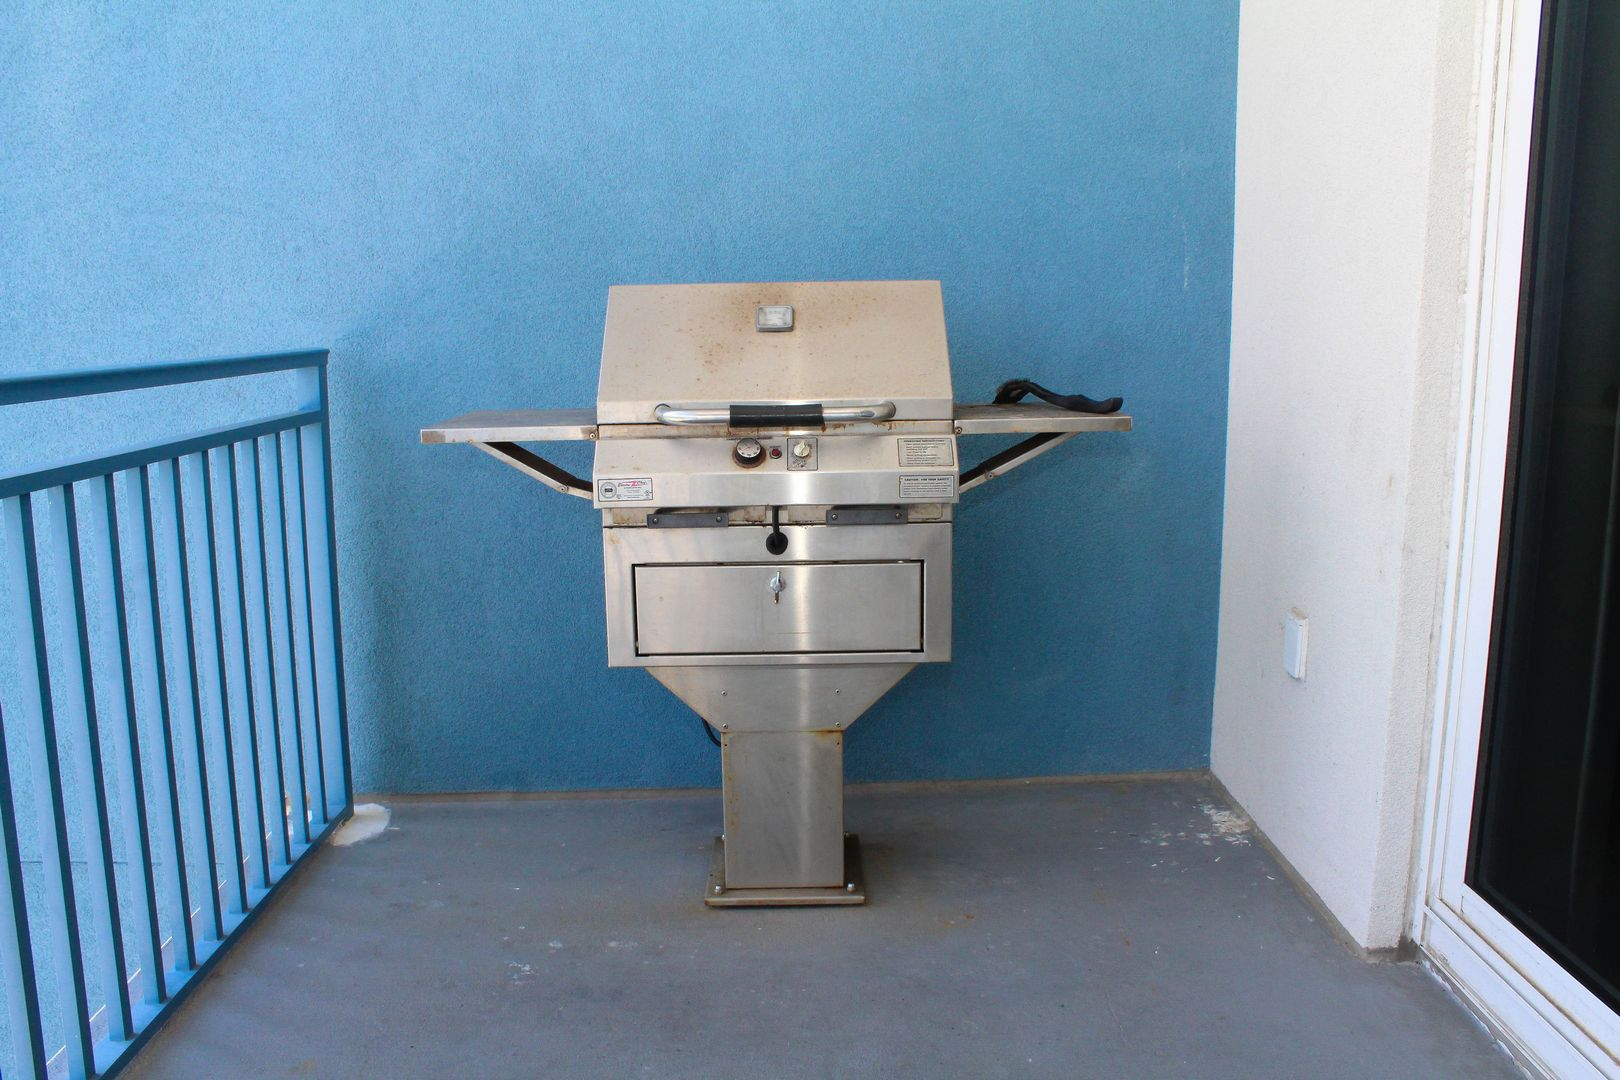 Grill on Balcony